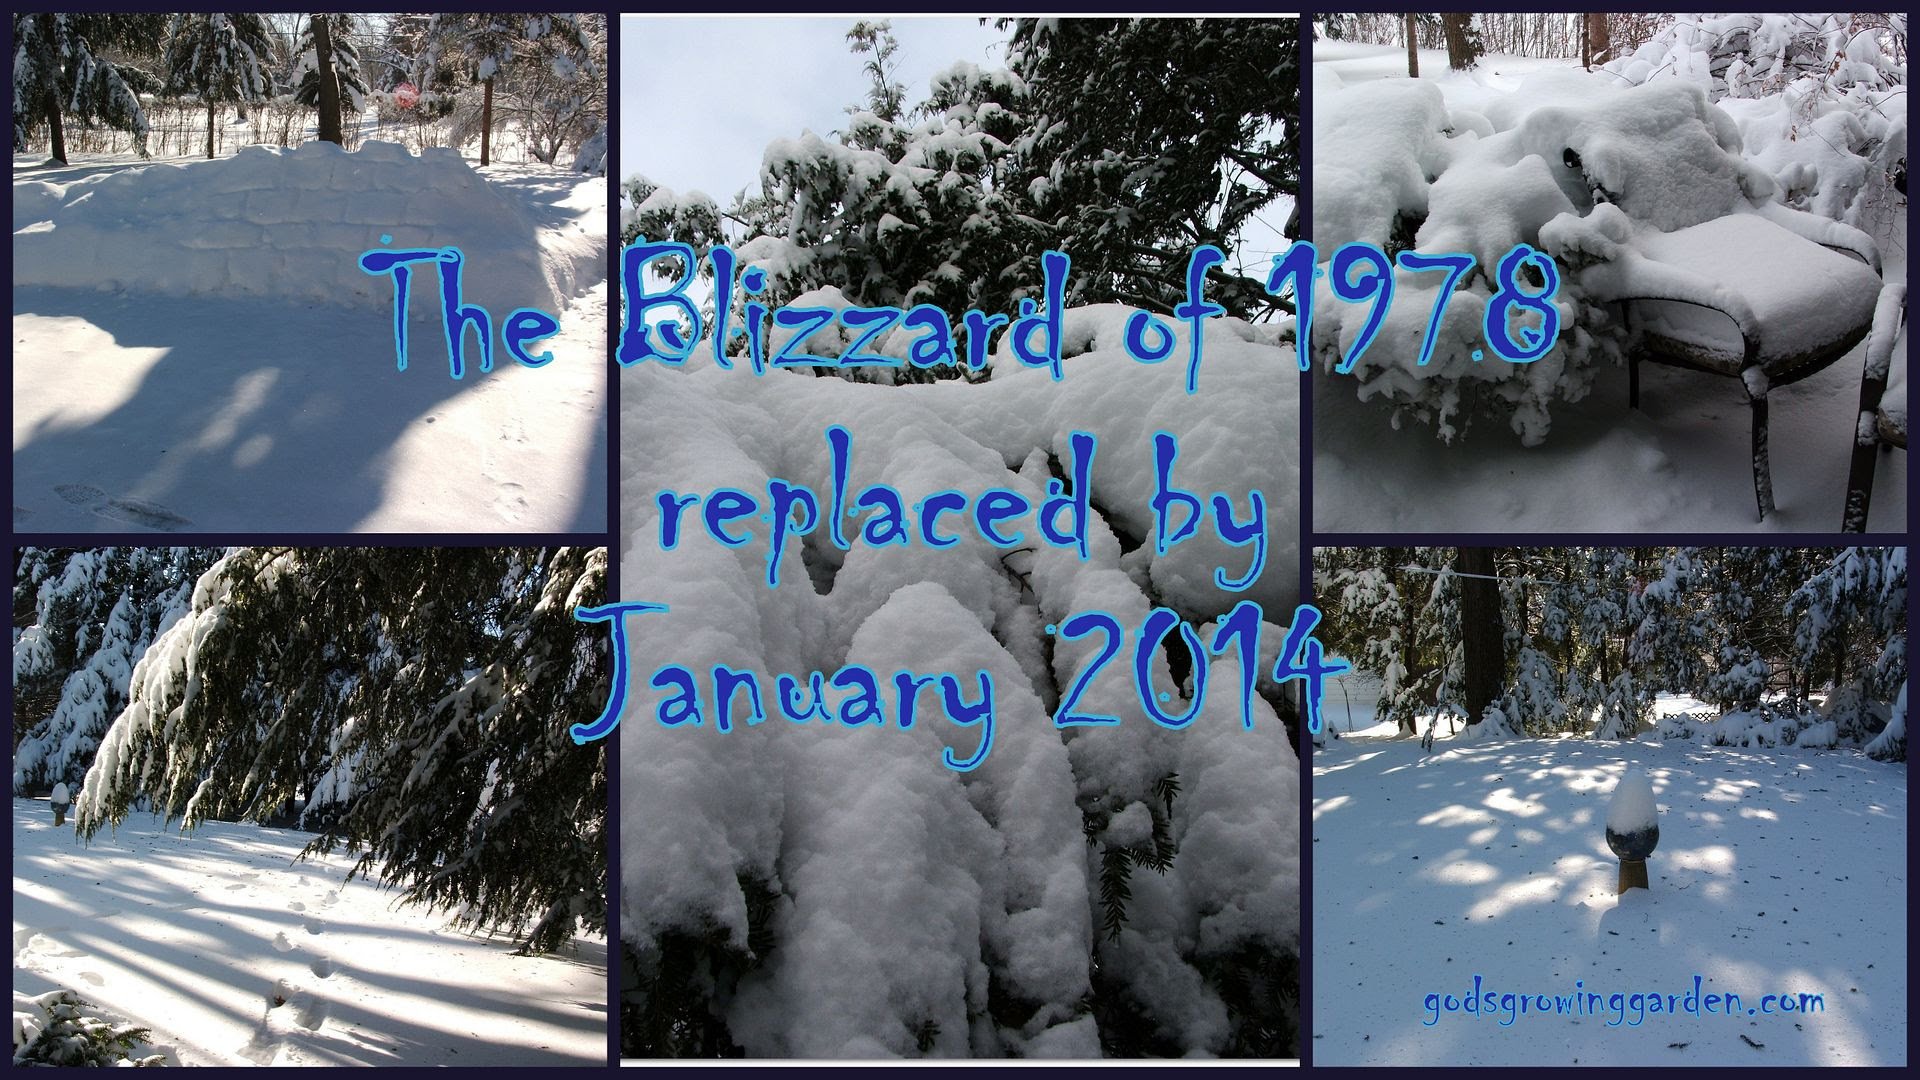 Blizzard of 78 Replaced by Angie Ouellette-Tower for godsgrowinggarden.com photo 2014-01-06_zpsd81356d3.jpg